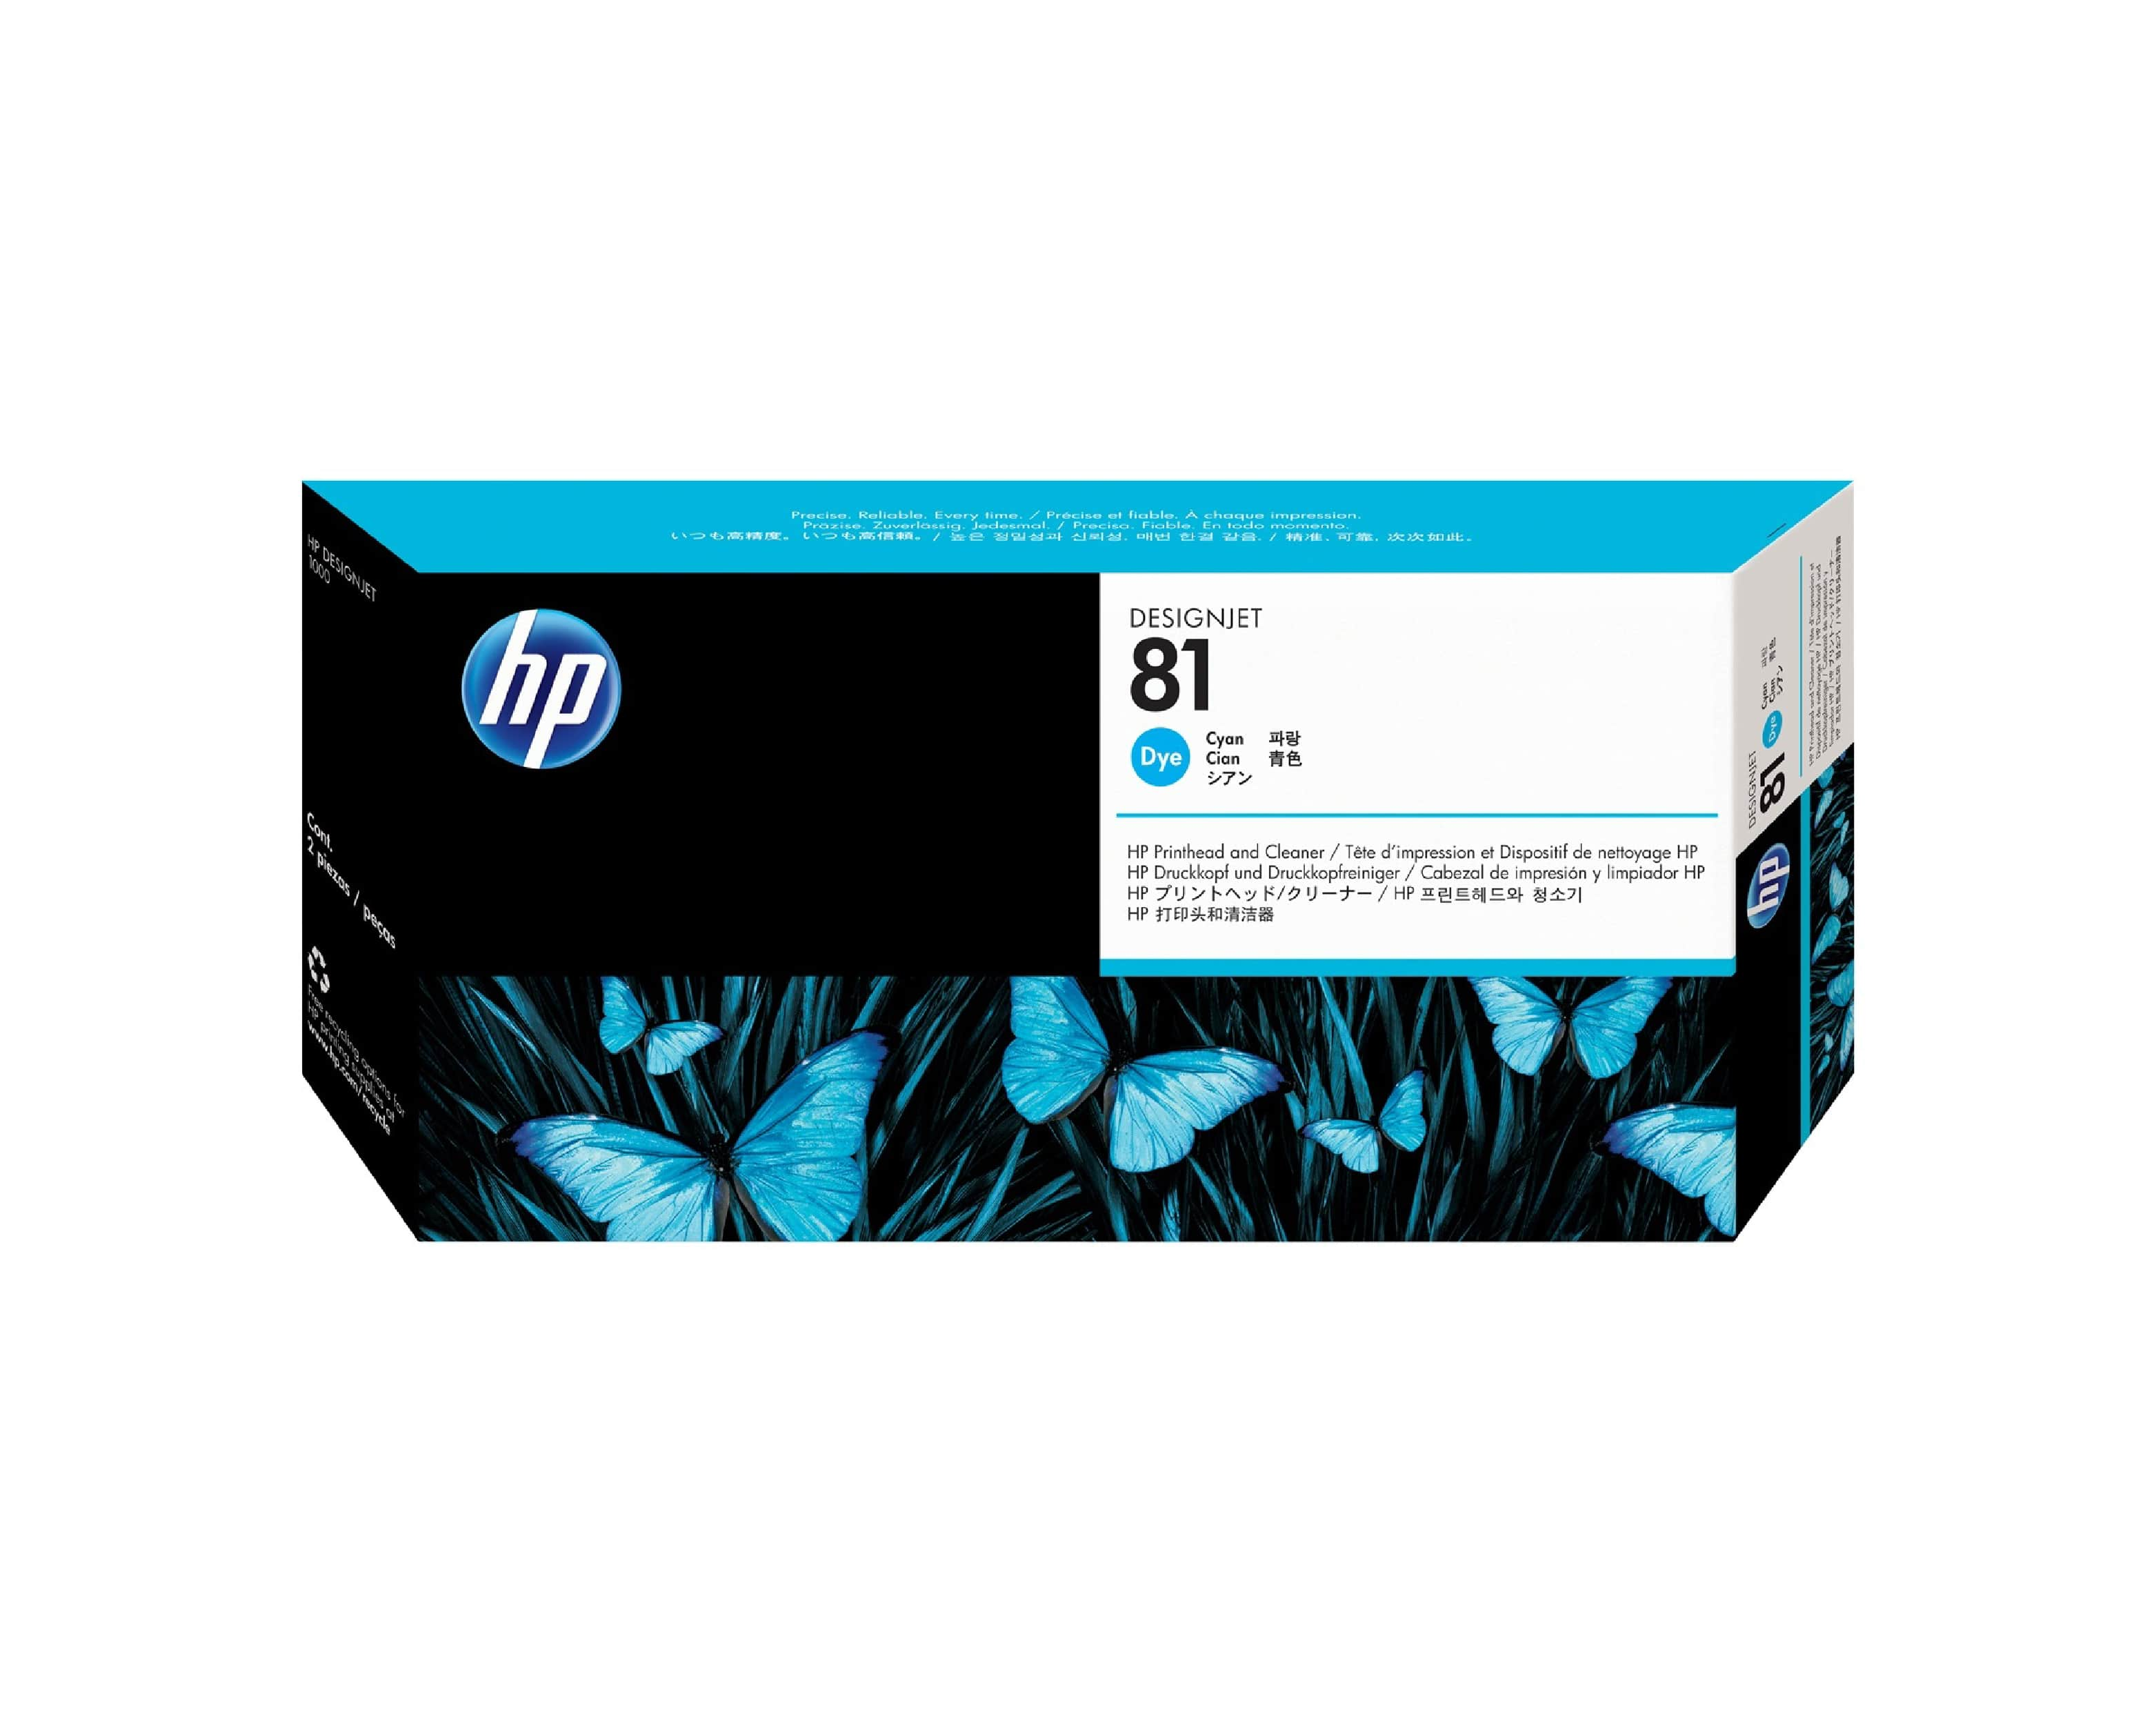 HP 81 DesignJet Printhead & Cleaner - Cyan